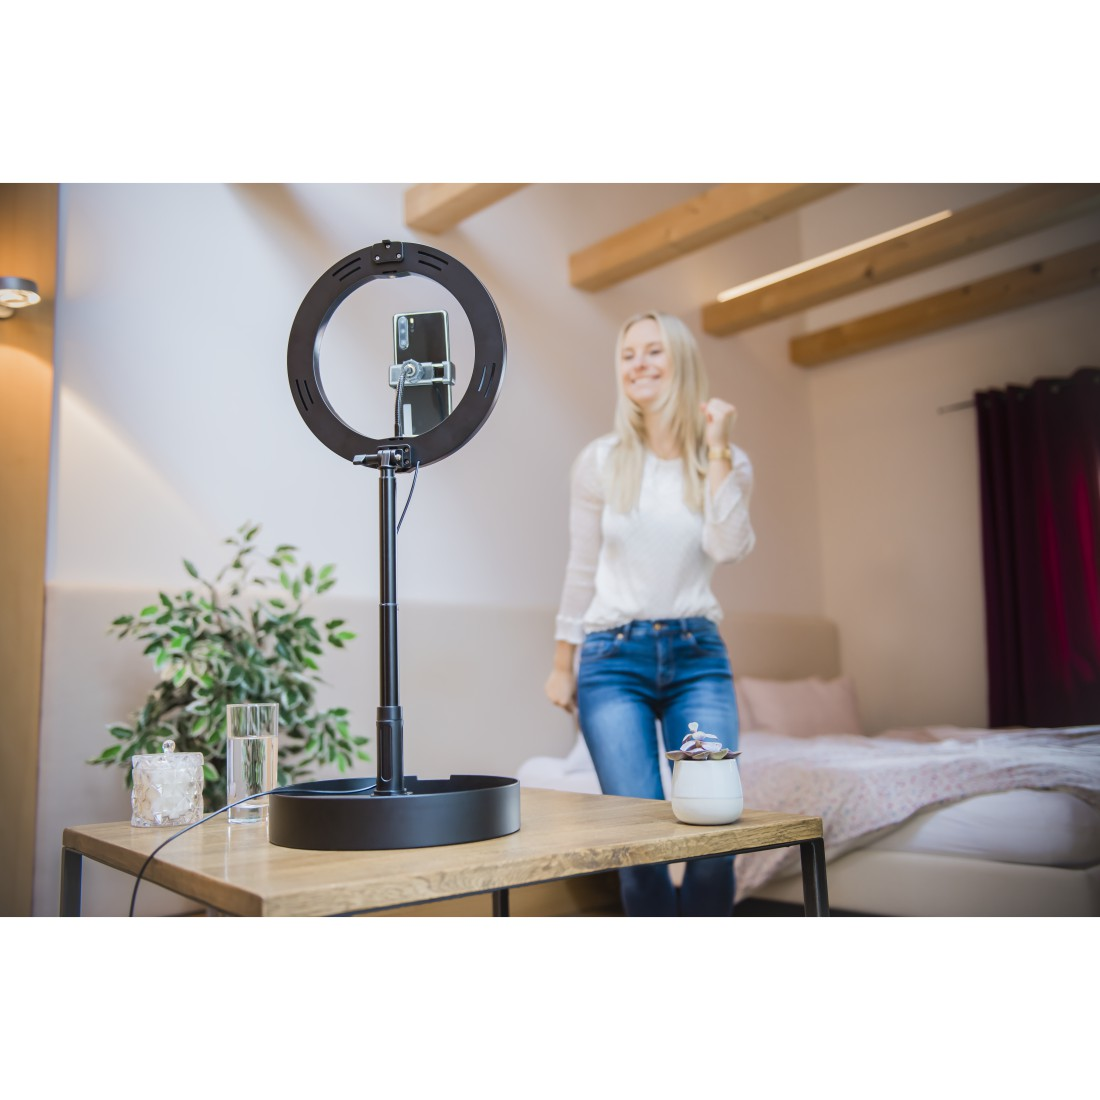 "awx5 High-Res Appliance 5 - Hama, Lampe anneau Ringlight LED ""SpotLight FoldUp 102"", pr smartph., repl.,10,2"""